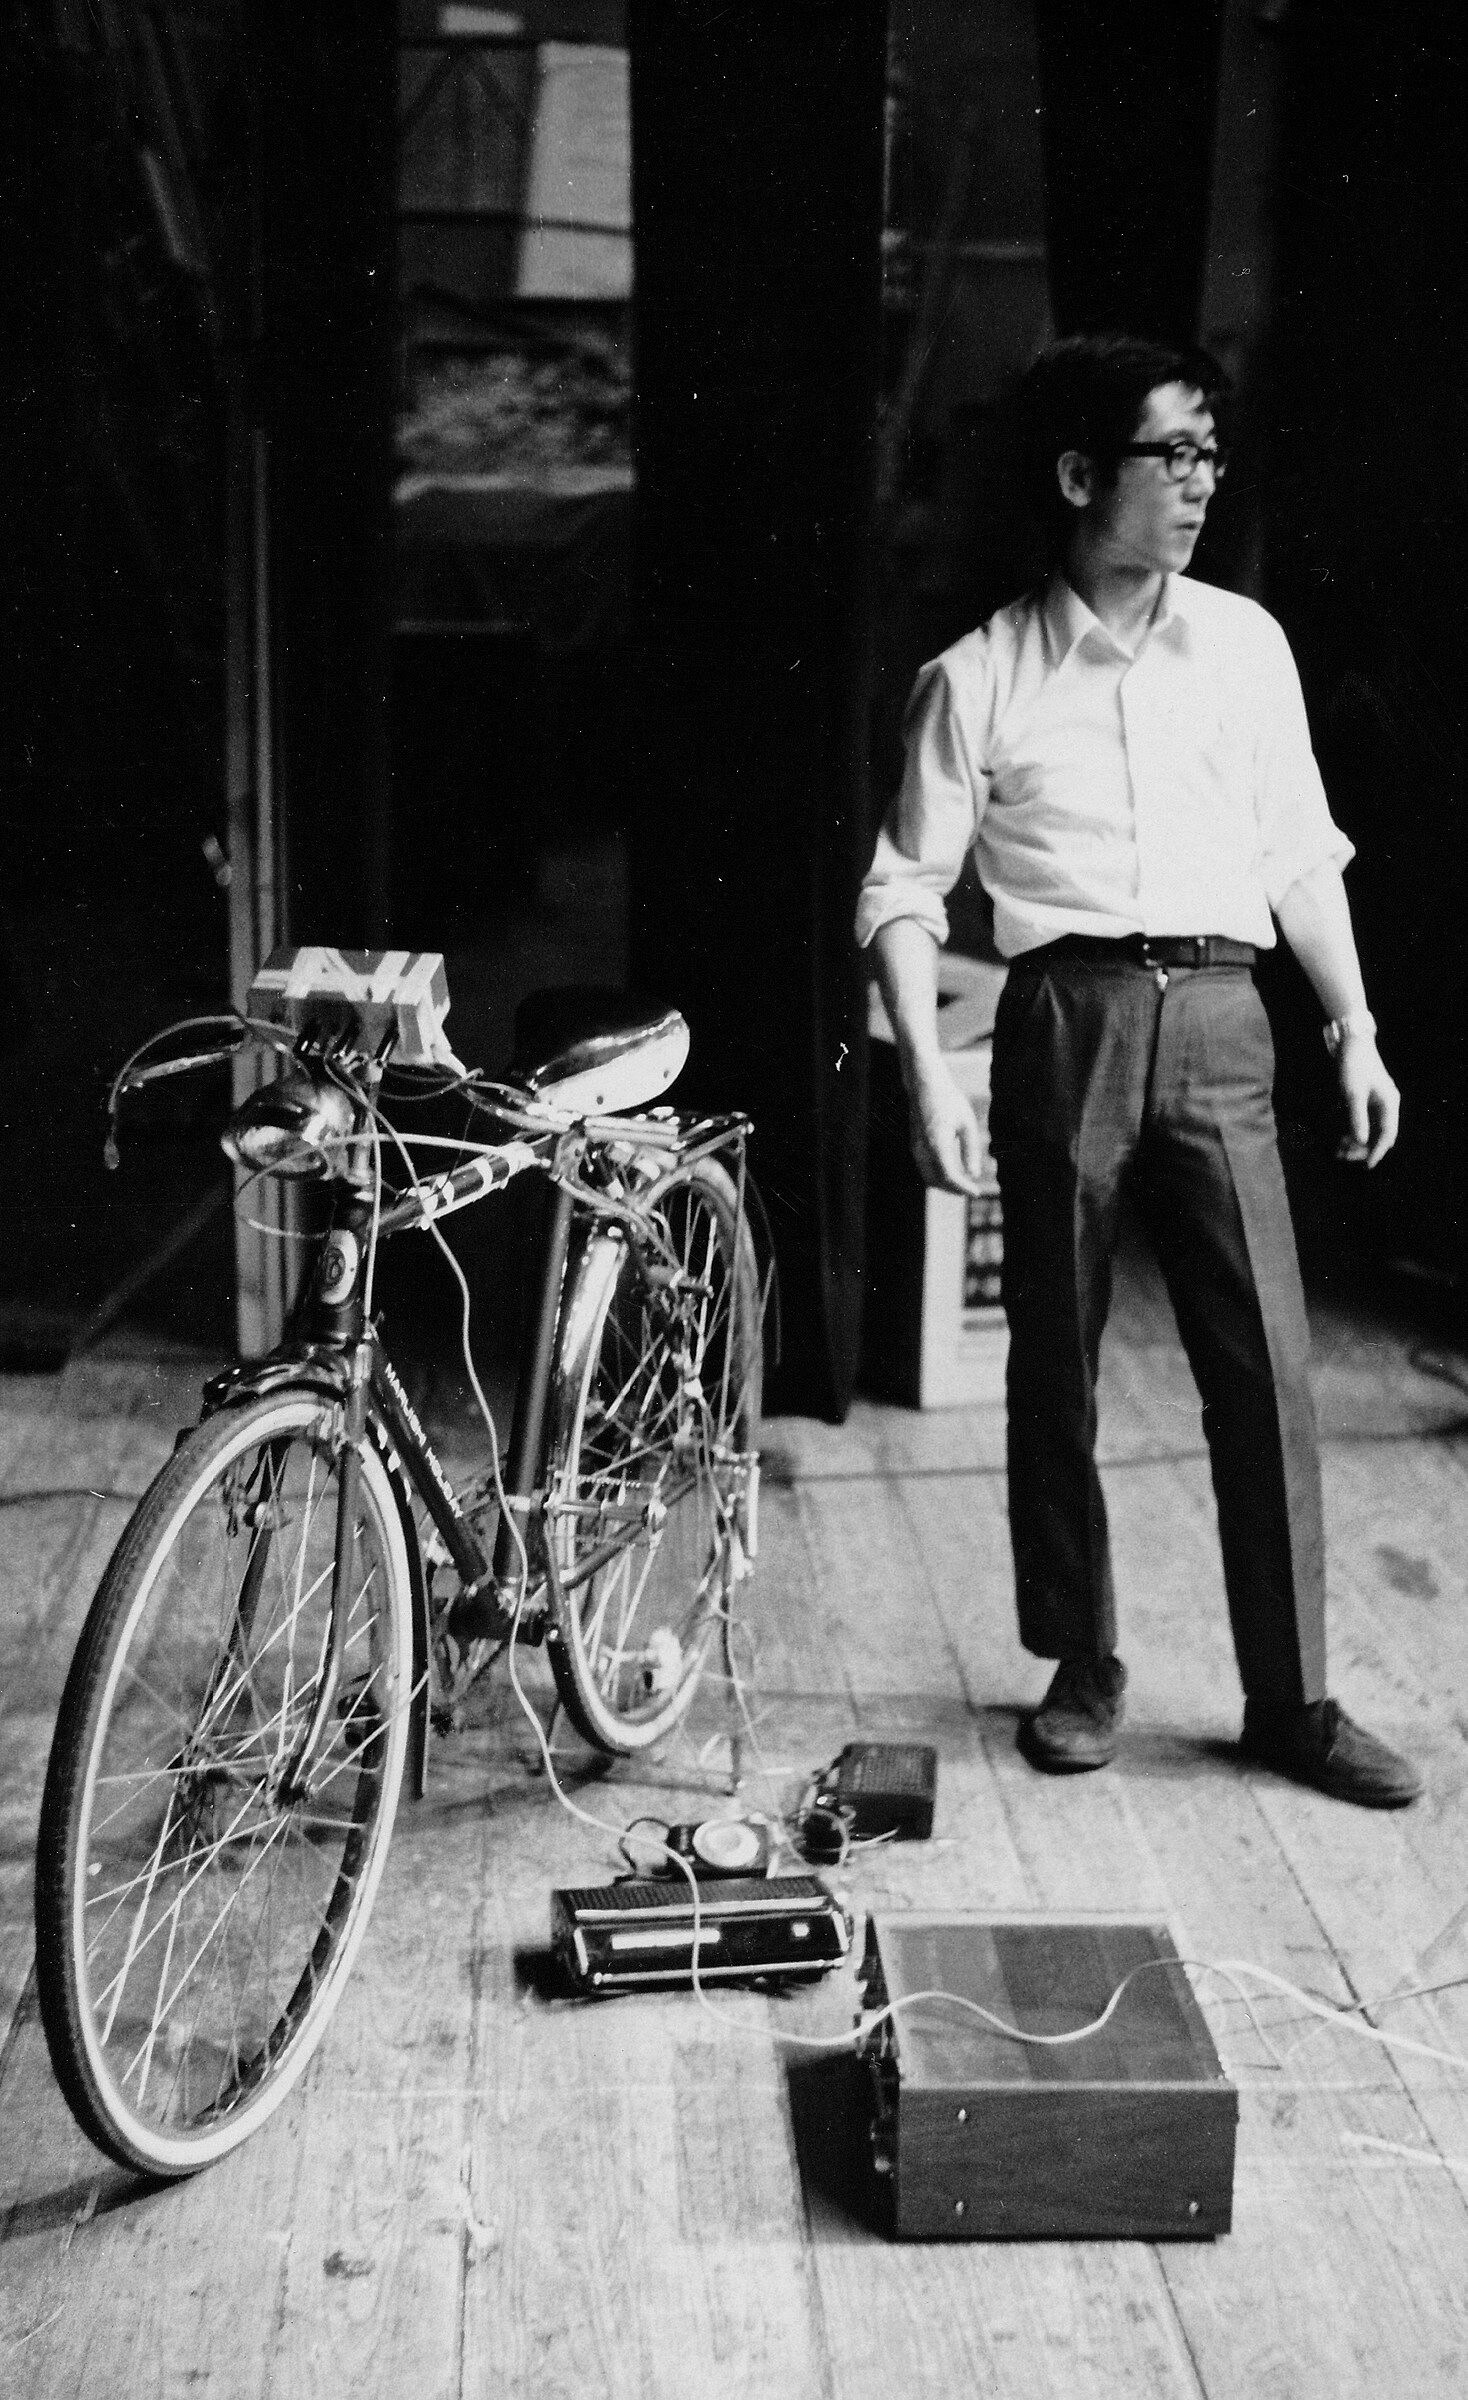 The artist stands with a bicycle which is wired to electrical contraptions